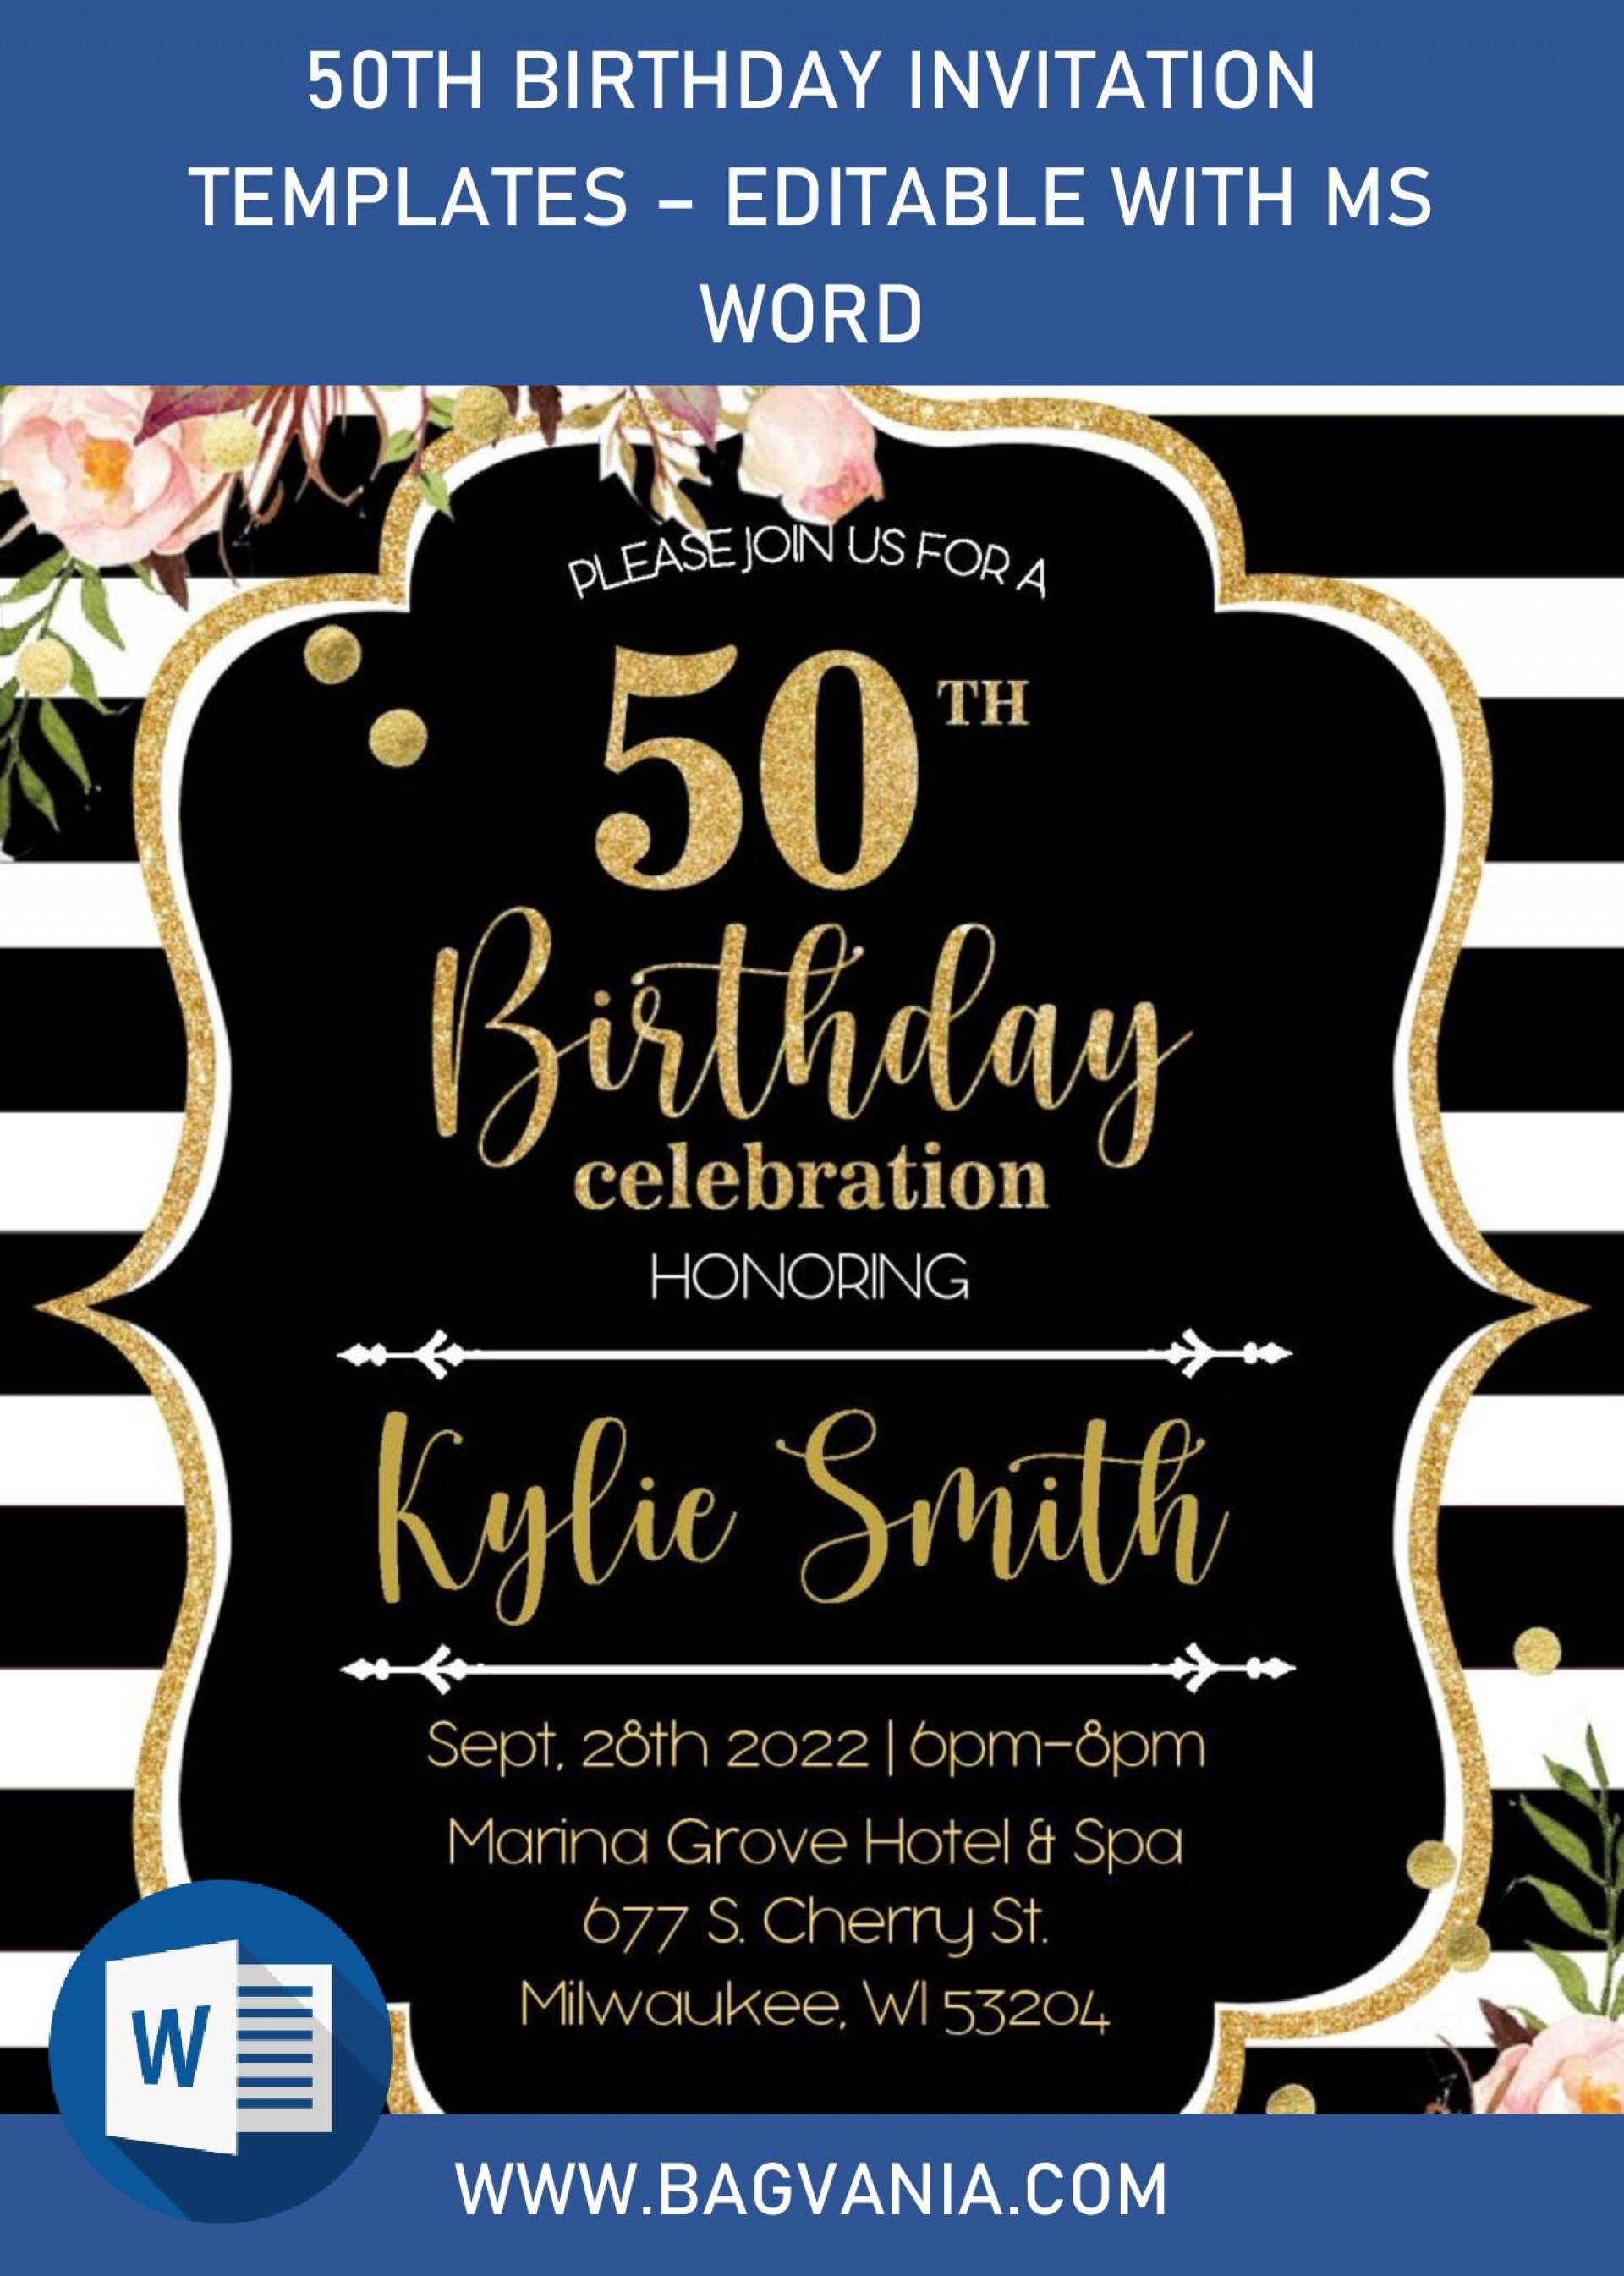 003 Phenomenal Microsoft Word 50th Birthday Invitation Template Highest Quality  Editable Wedding Anniversary1920